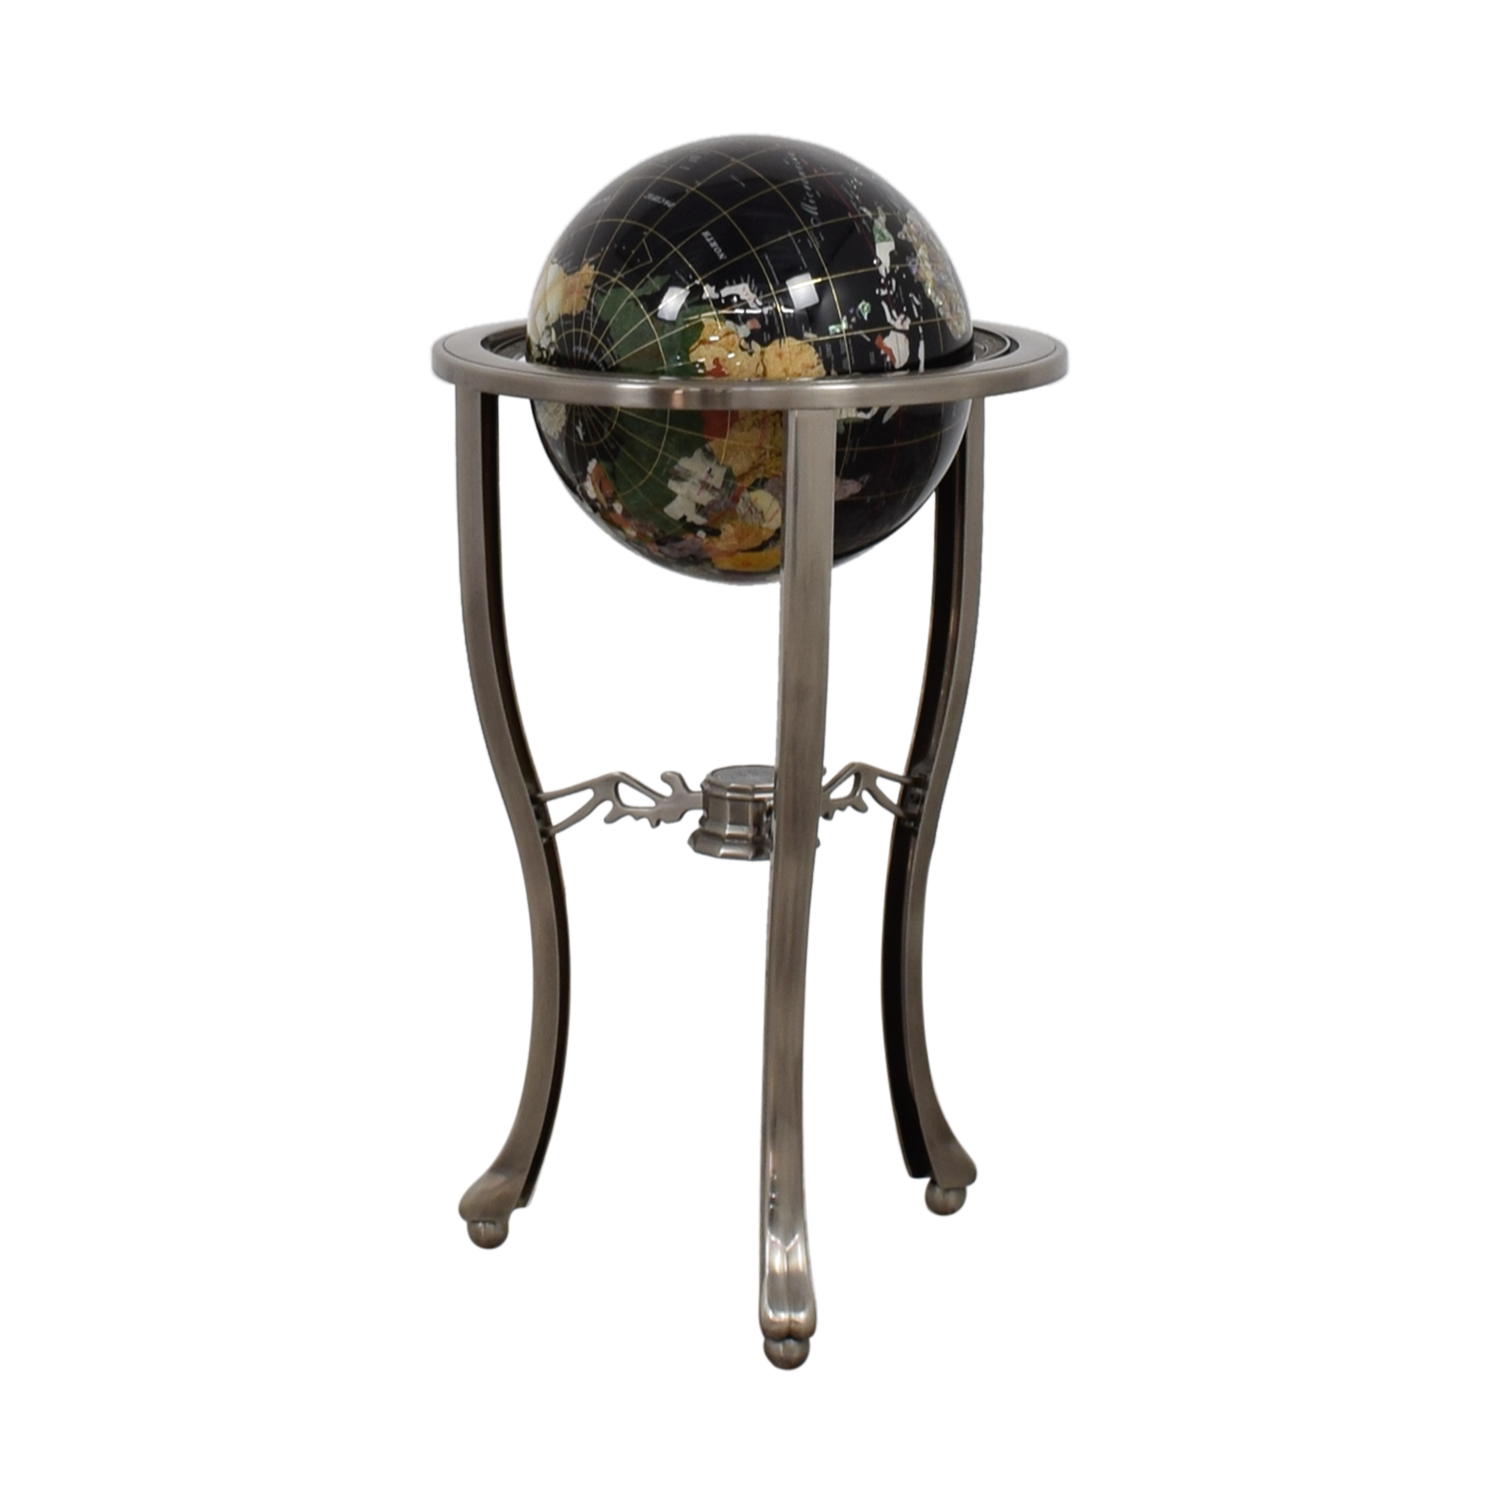 Semi Precious Stone Floor Standing Globe / Decorative Accents